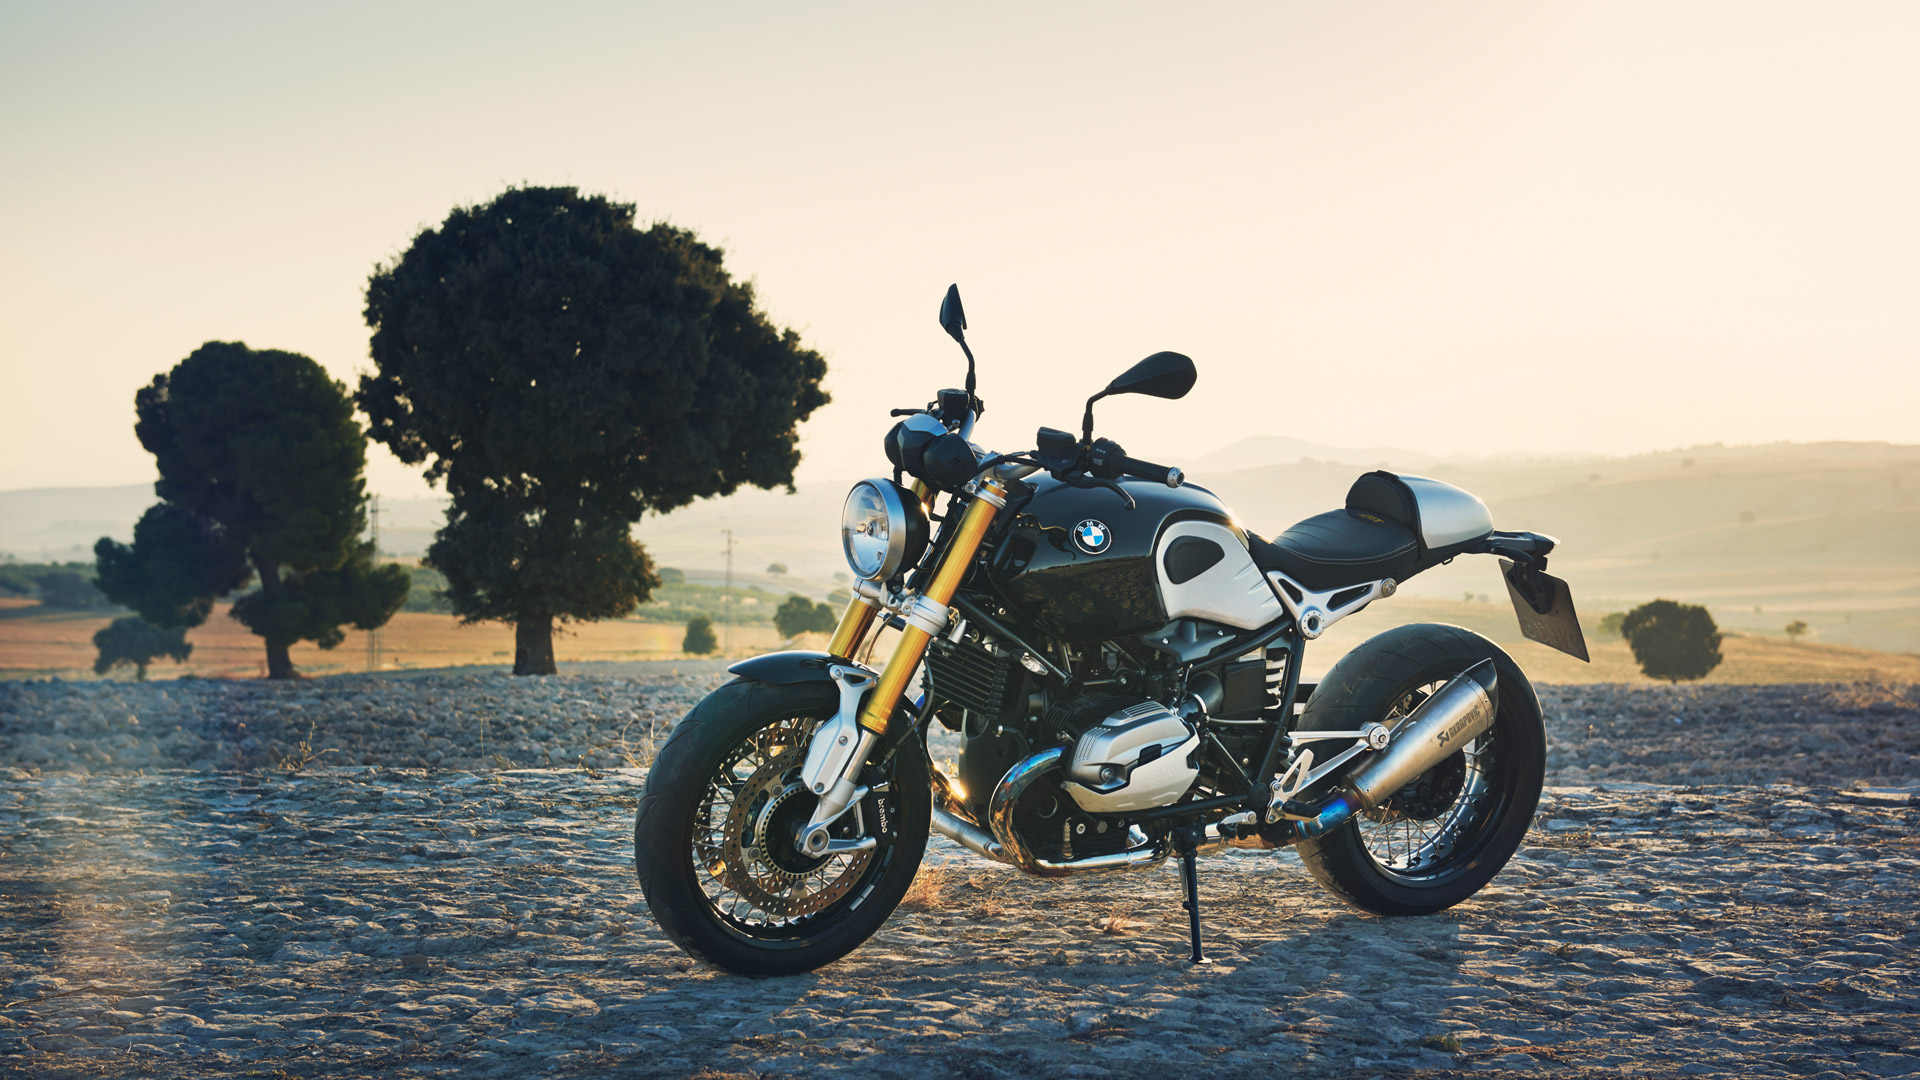 BMW Heritage - Worthington Motorcycles